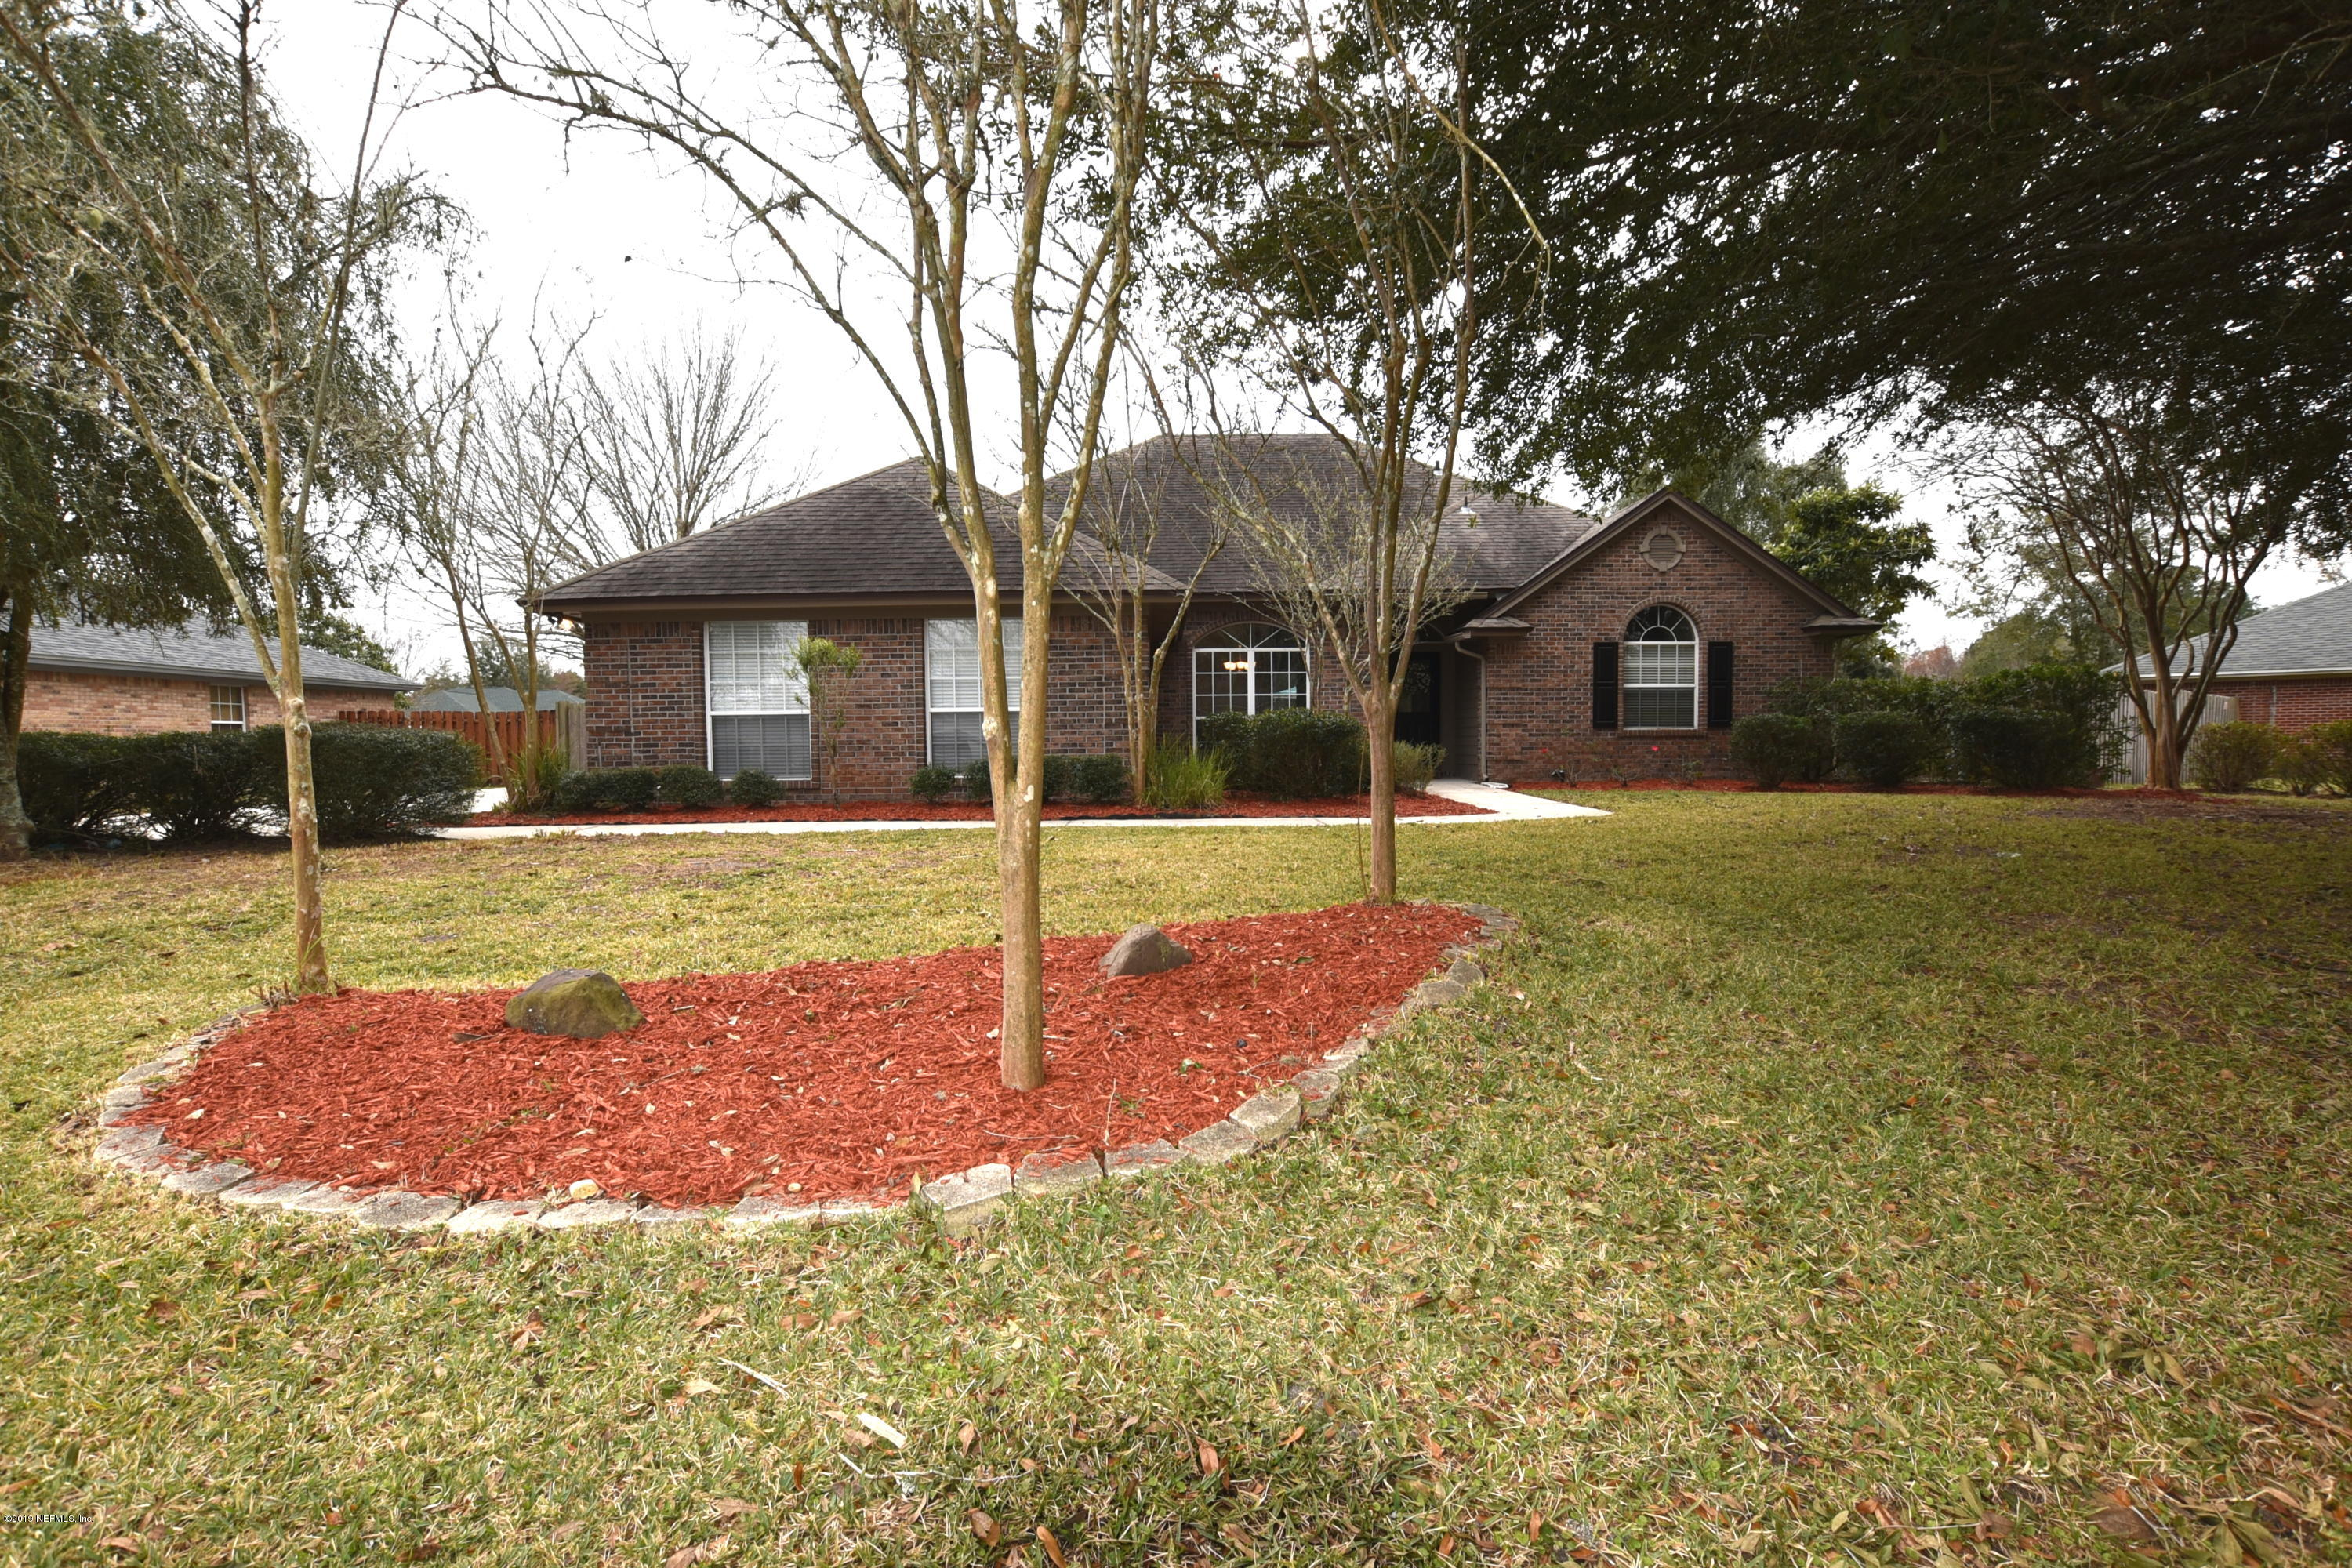 3376 CHIMNEY, MIDDLEBURG, FLORIDA 32068, 4 Bedrooms Bedrooms, ,2 BathroomsBathrooms,Residential - single family,For sale,CHIMNEY,974865